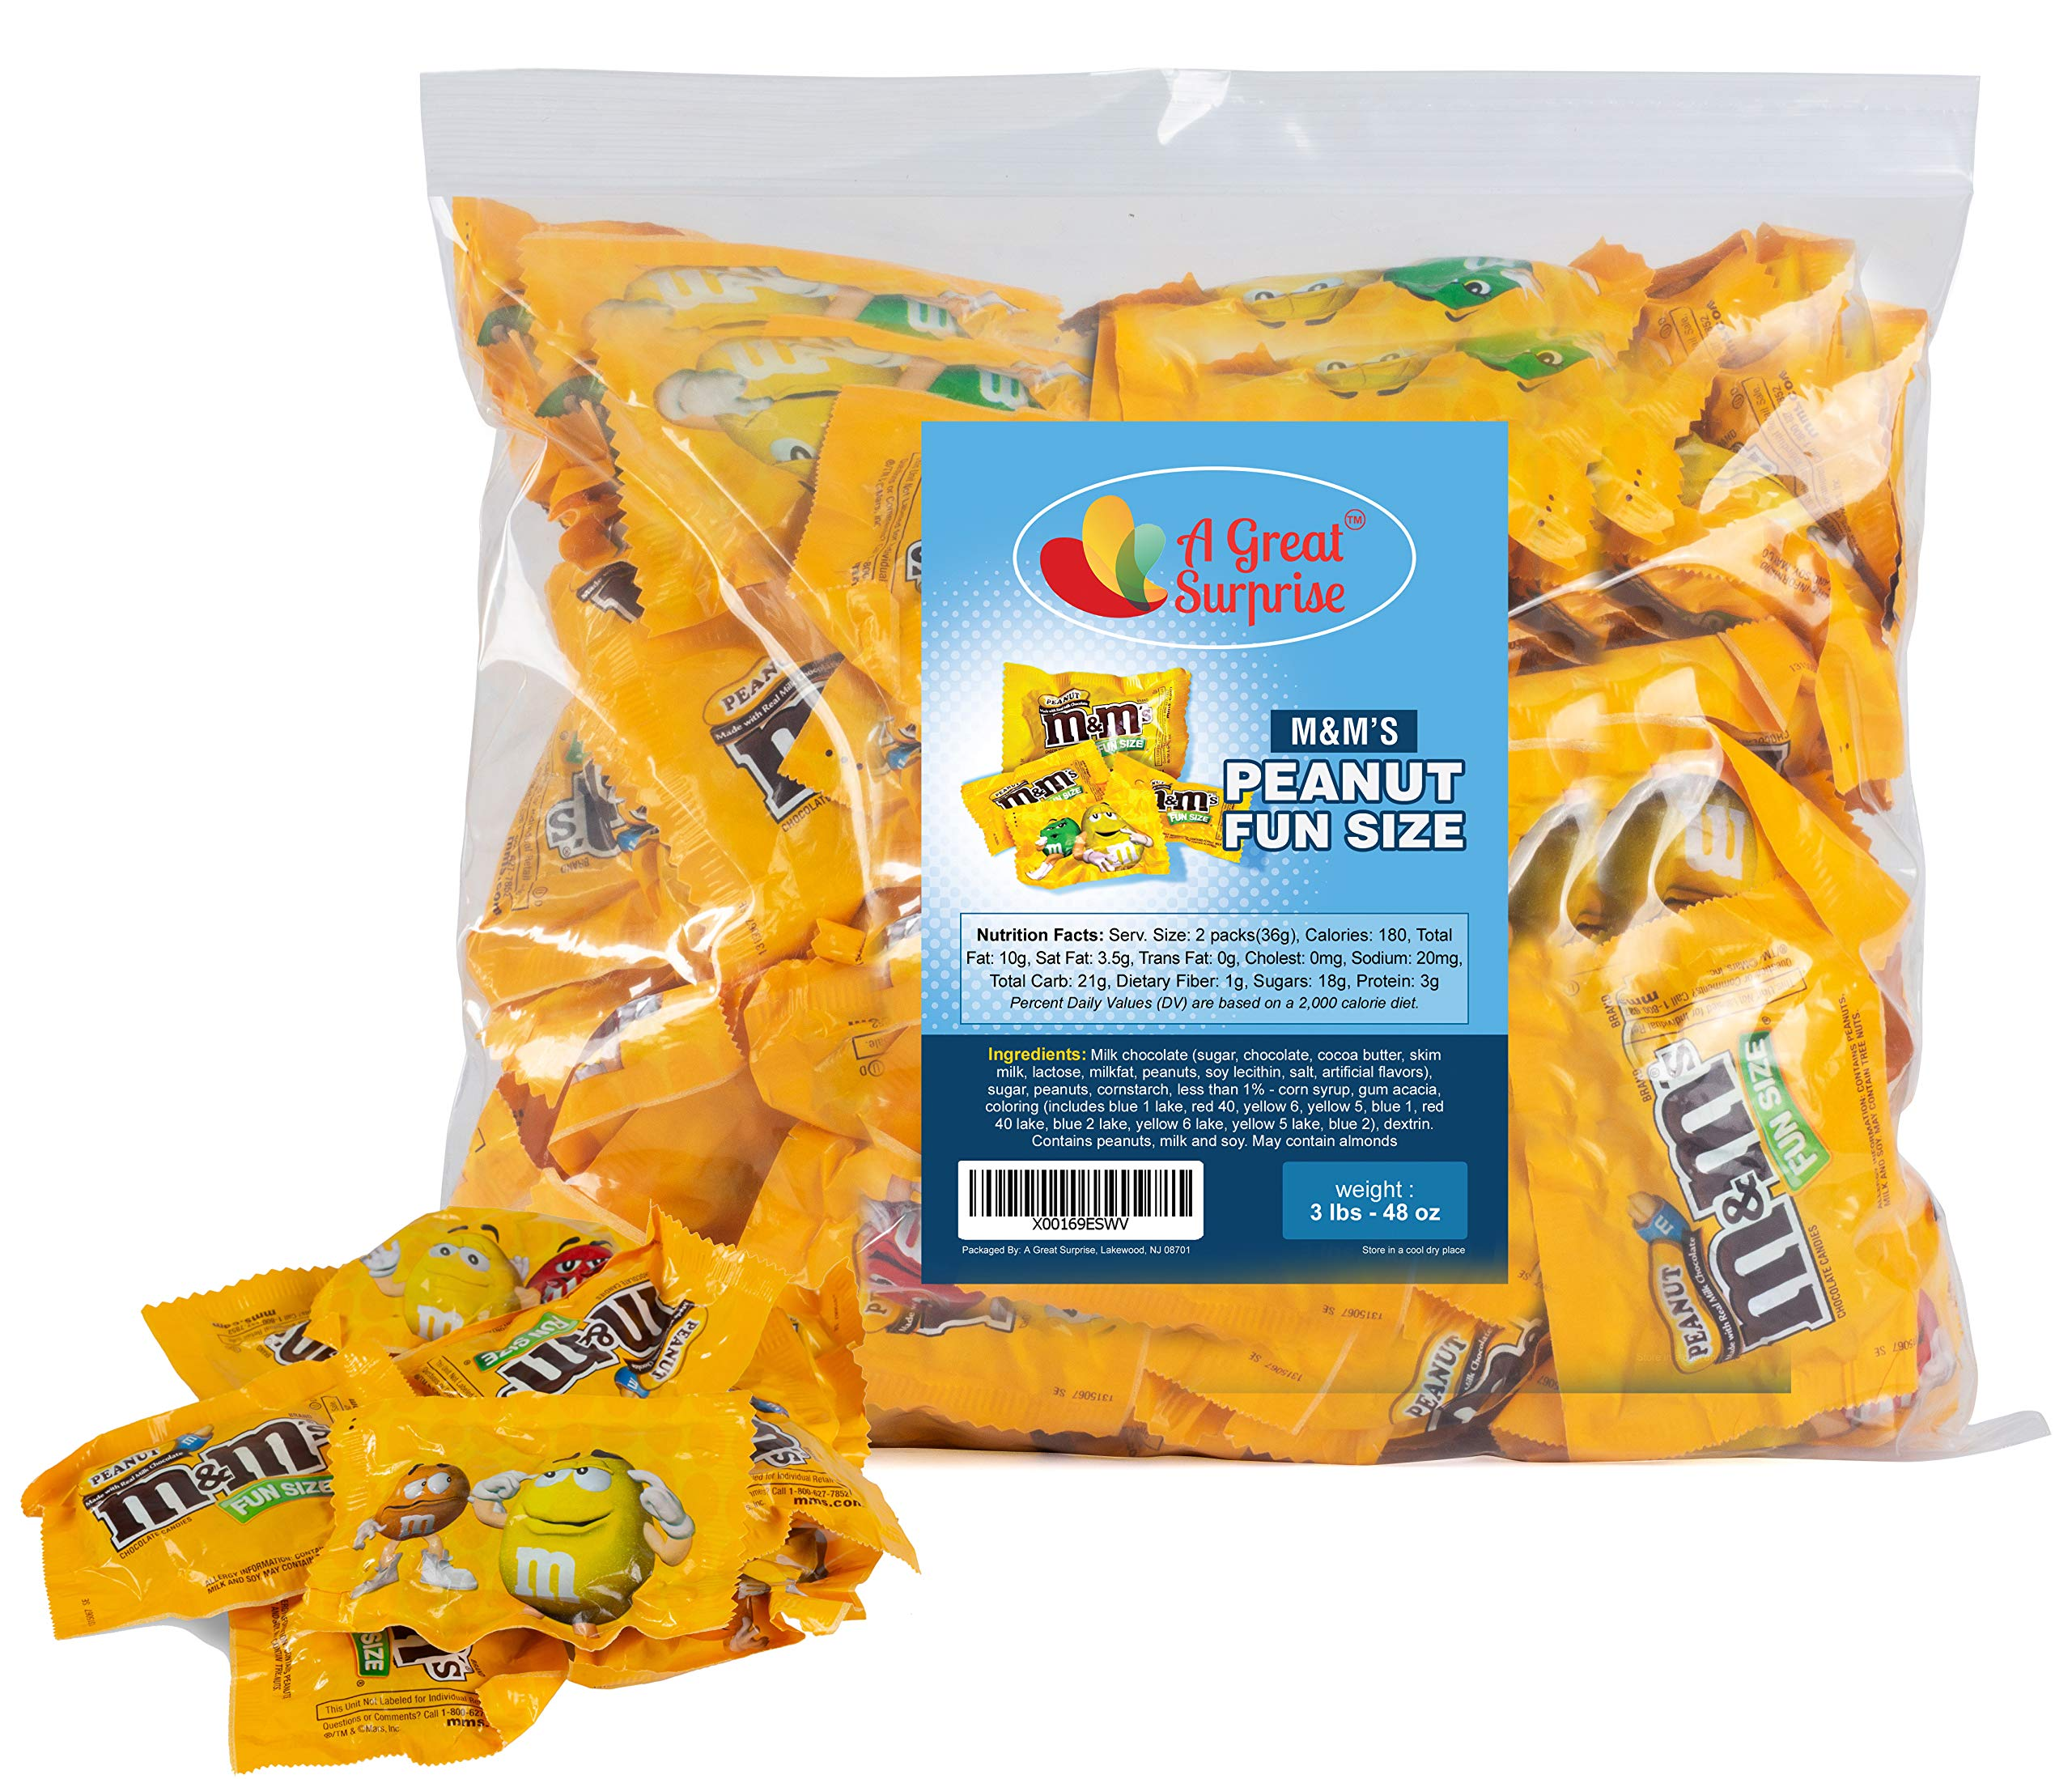 M&Ms Peanut Milk Chocolate Fun Size - Yellow Candy - 3 LB Bulk Candy by A Great Surprise